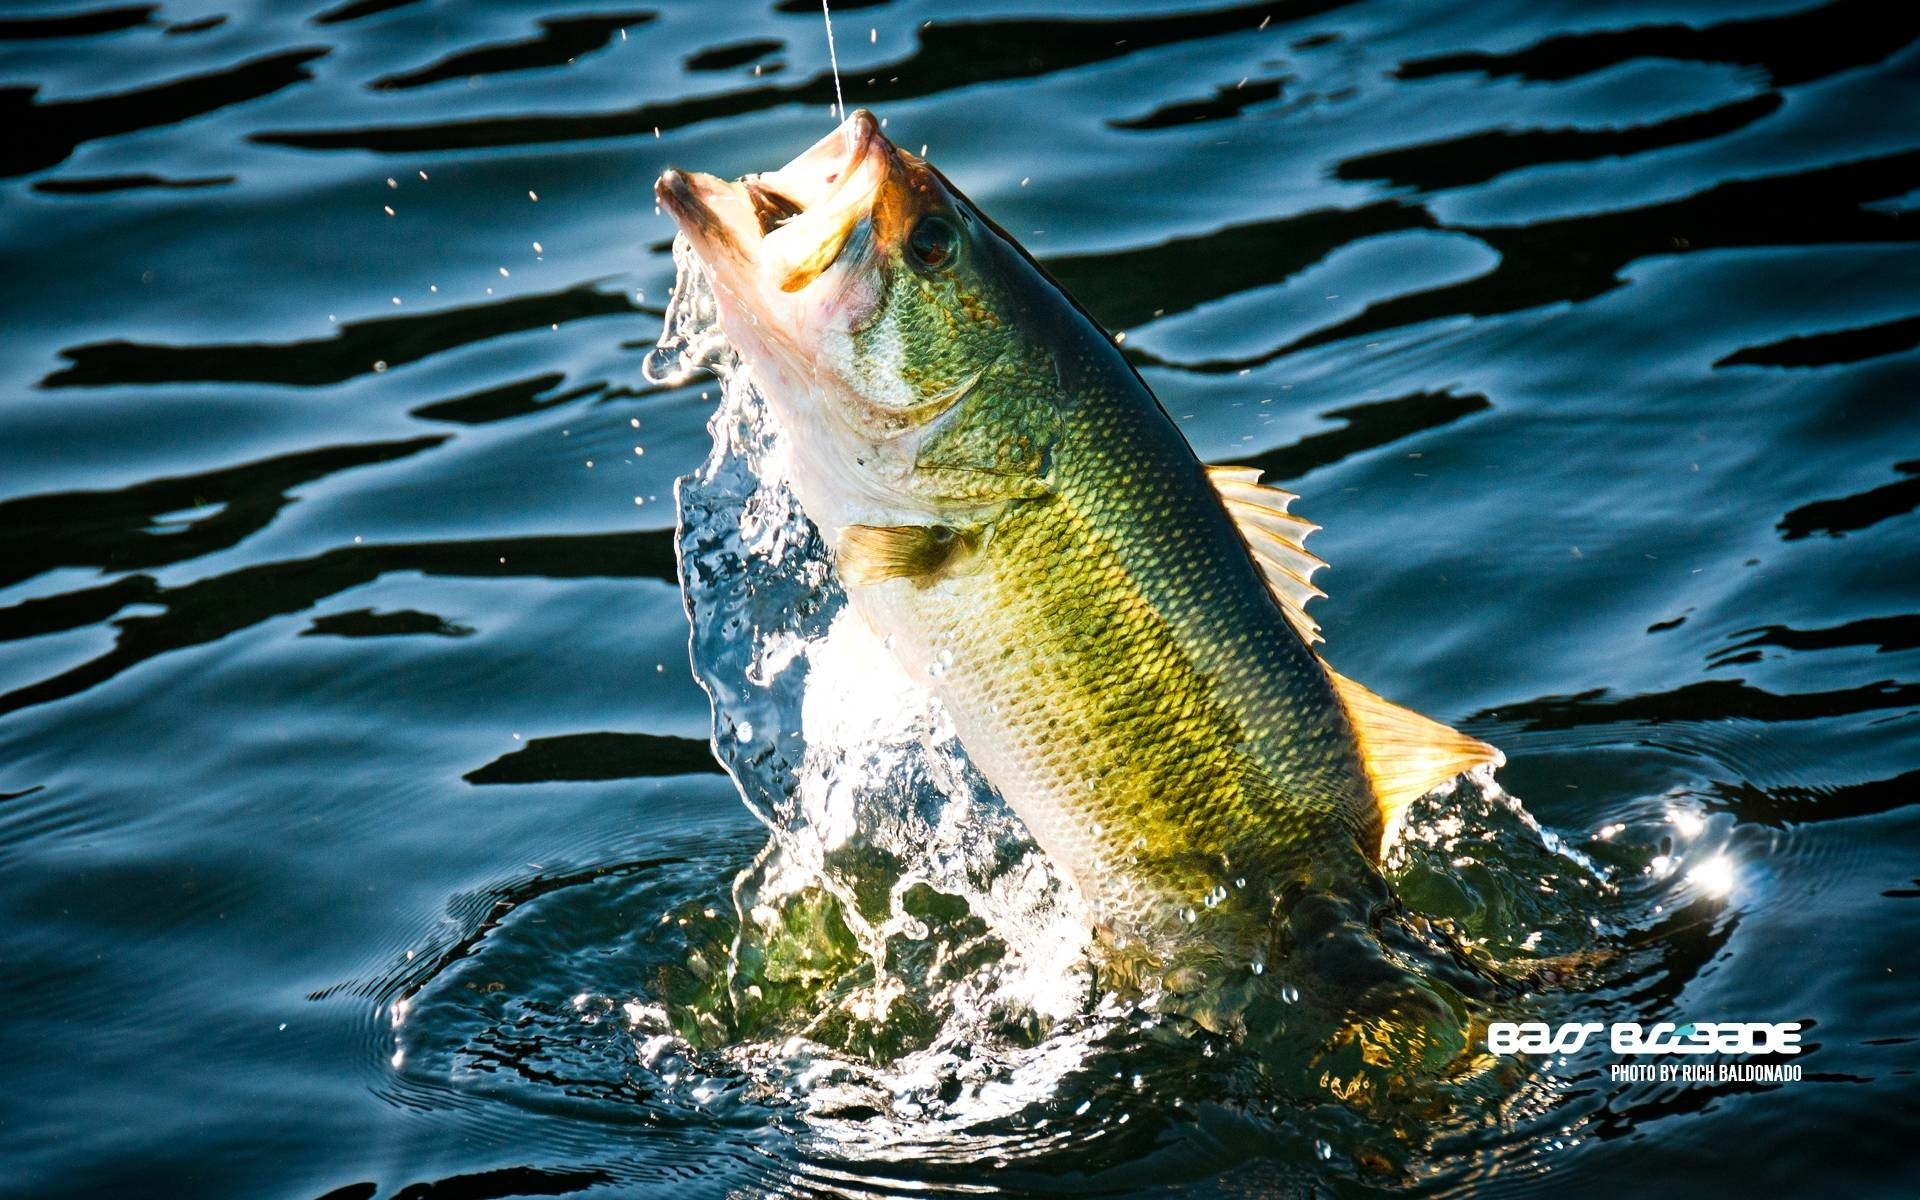 bass fishing wallpaper for iphone (52+ images)